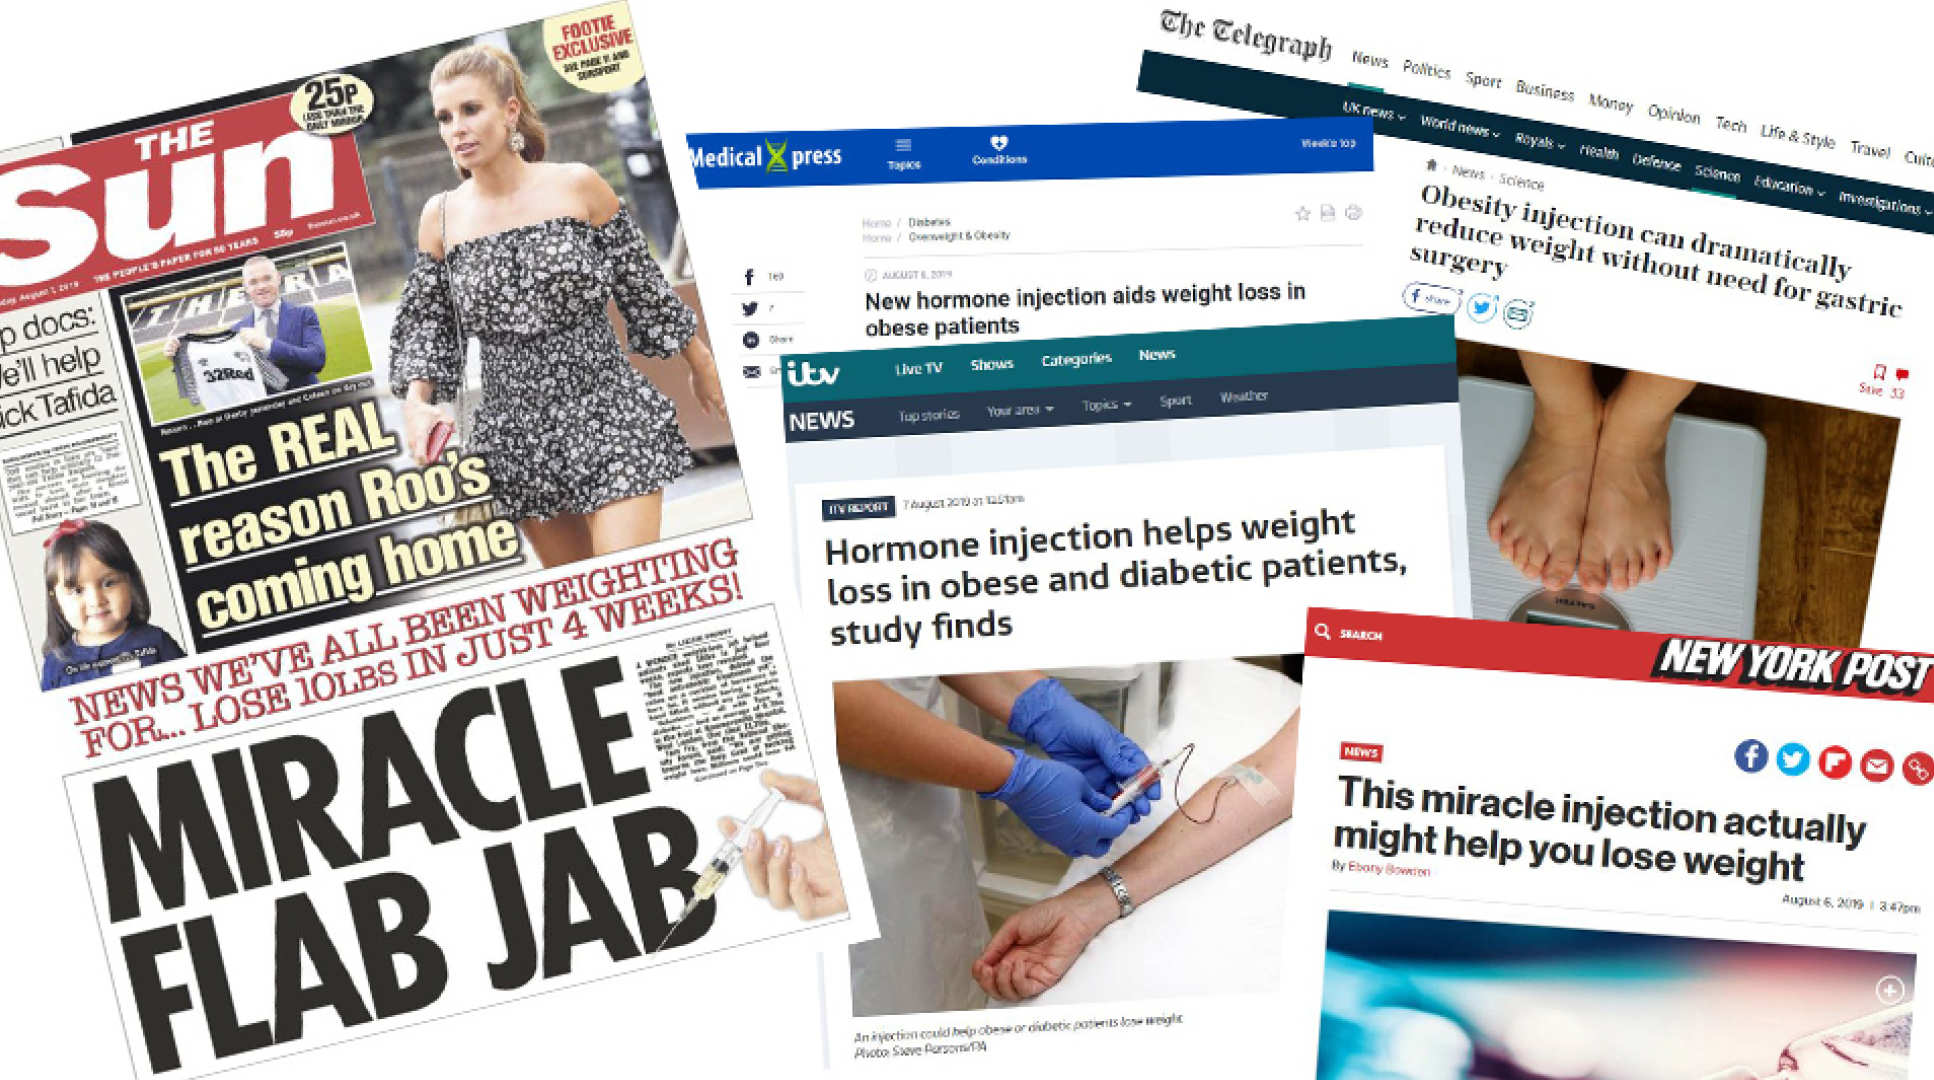 A selection of media cuttings about the story